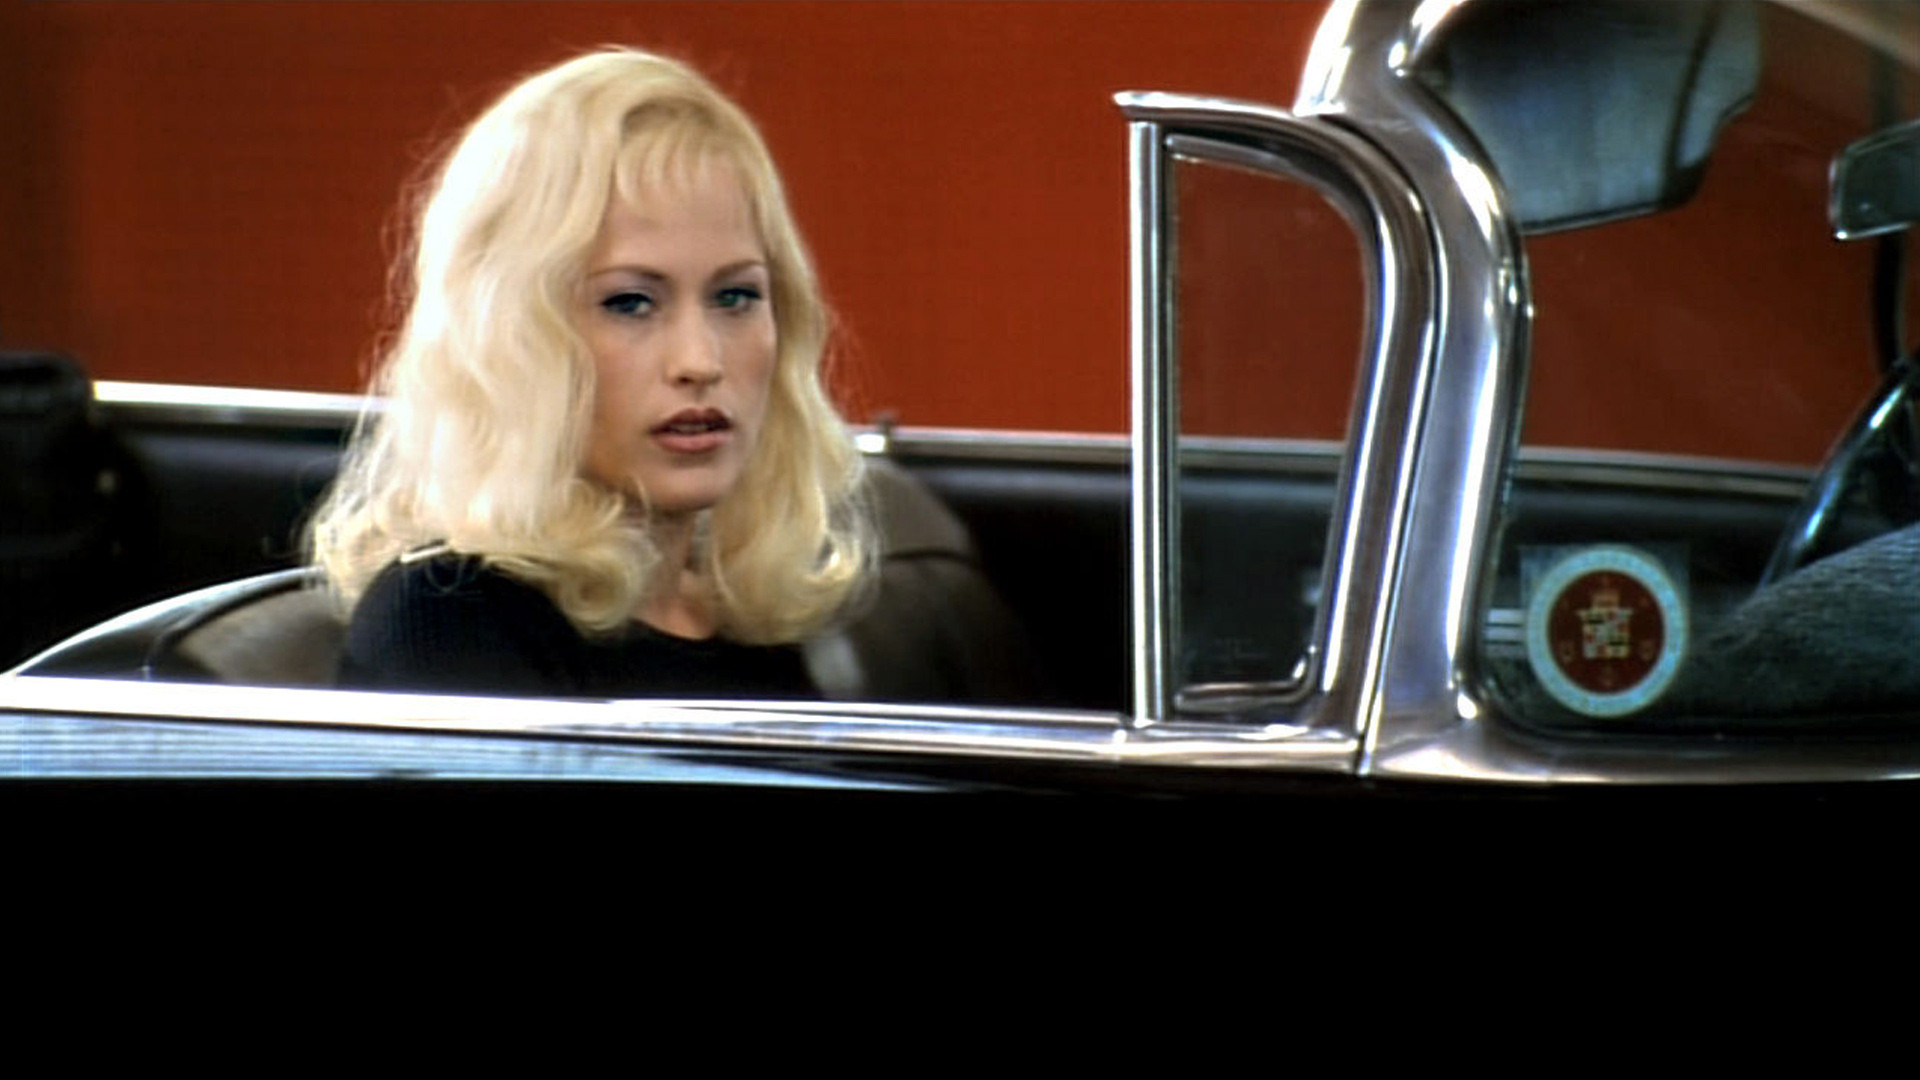 Lost Highway in 25 Close-up Shots